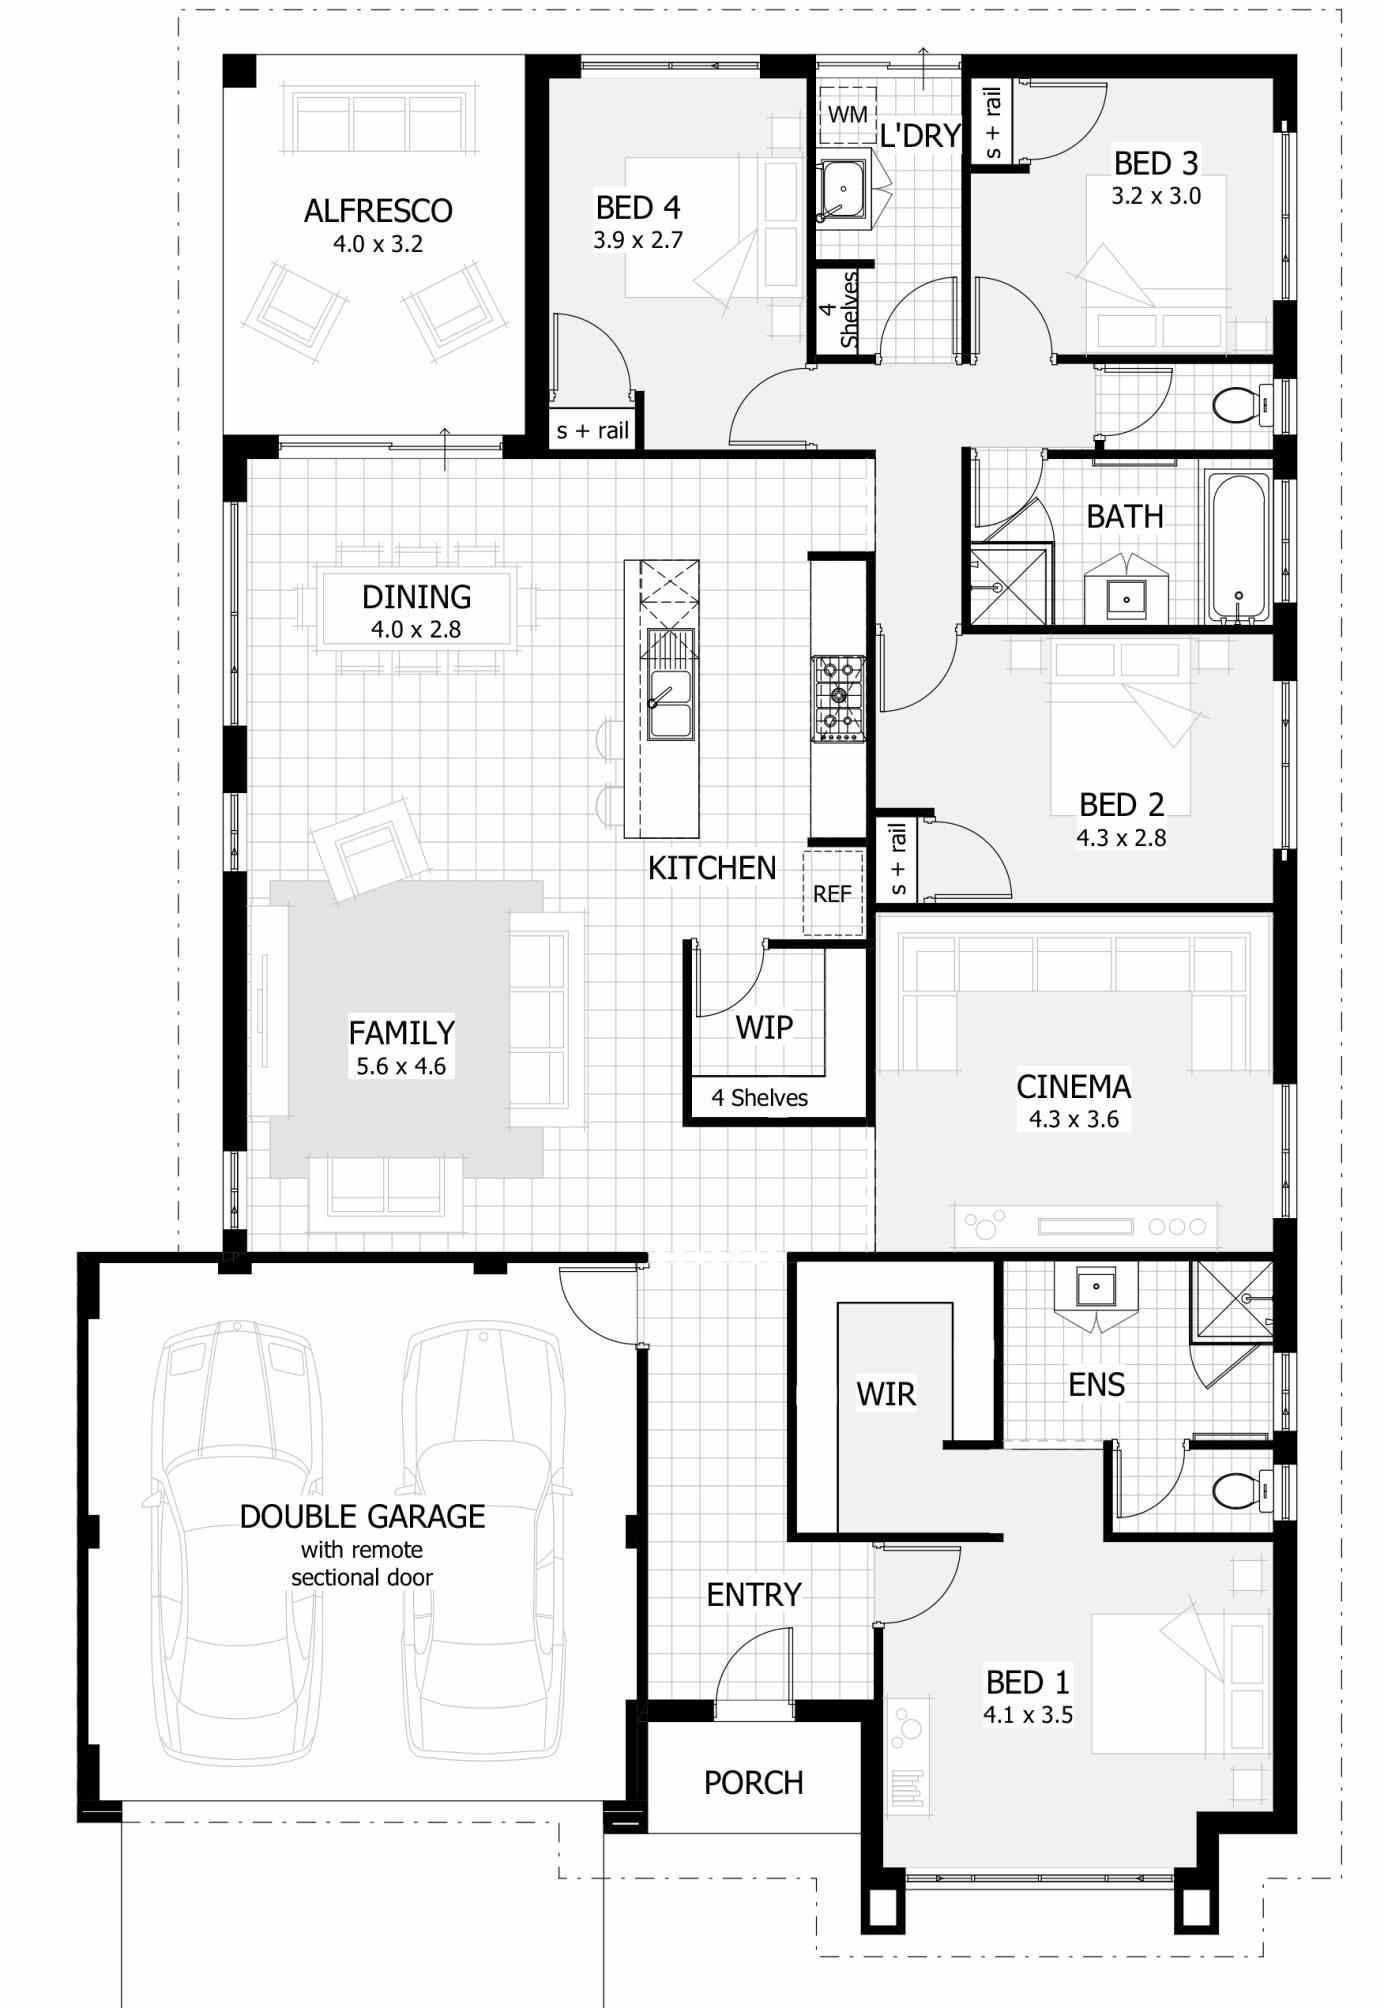 4 Bedroom House Plans Australia 4 Bedroom House Plans Australia 2021 House Plan Uncateg Four Bedroom House Plans House Plans Australia Australian House Plans